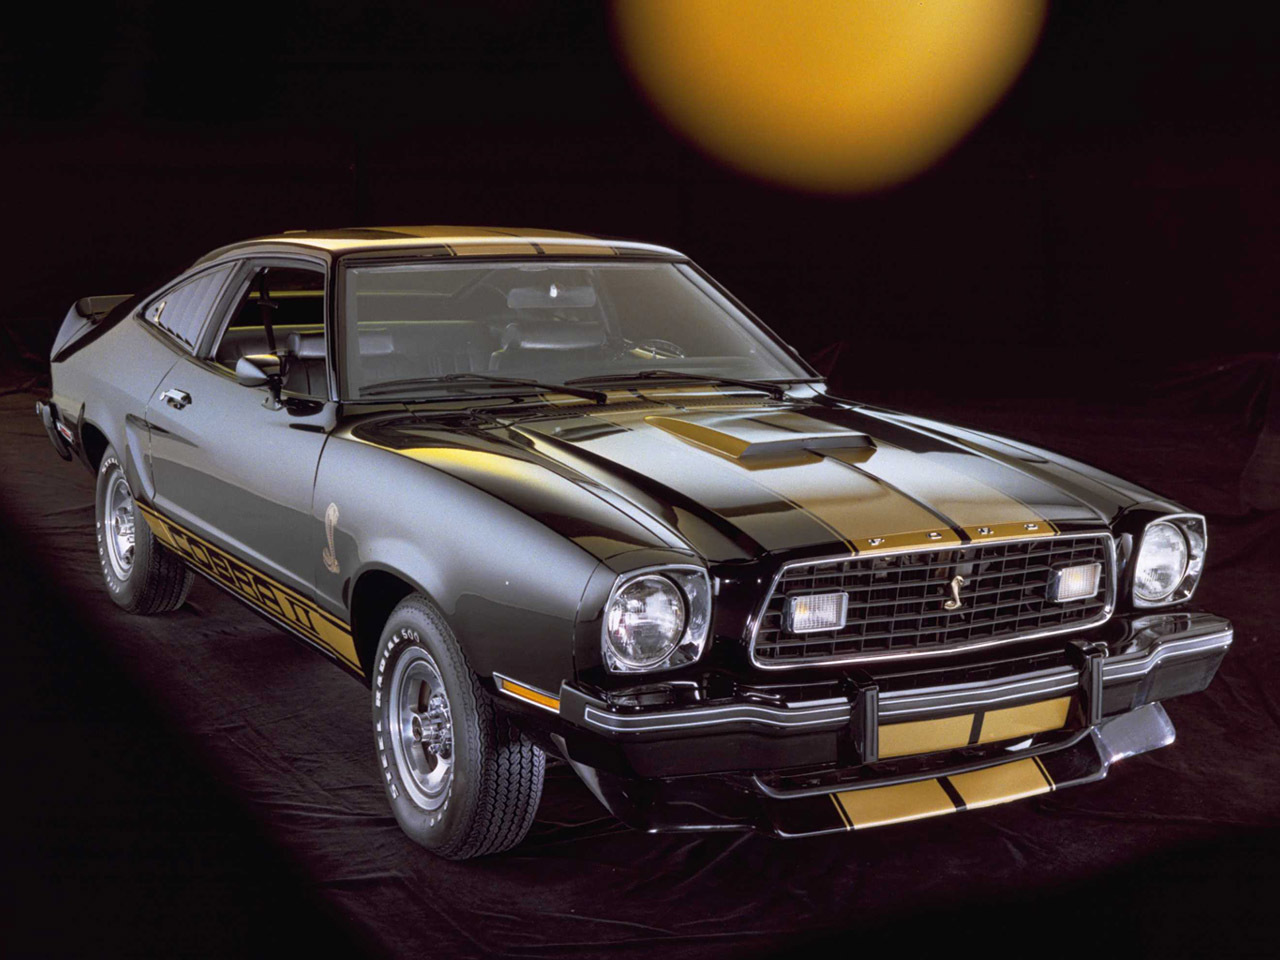 Muscle Cars Images 1975 Ford Mustang Cobra HD Wallpaper And Background Photos